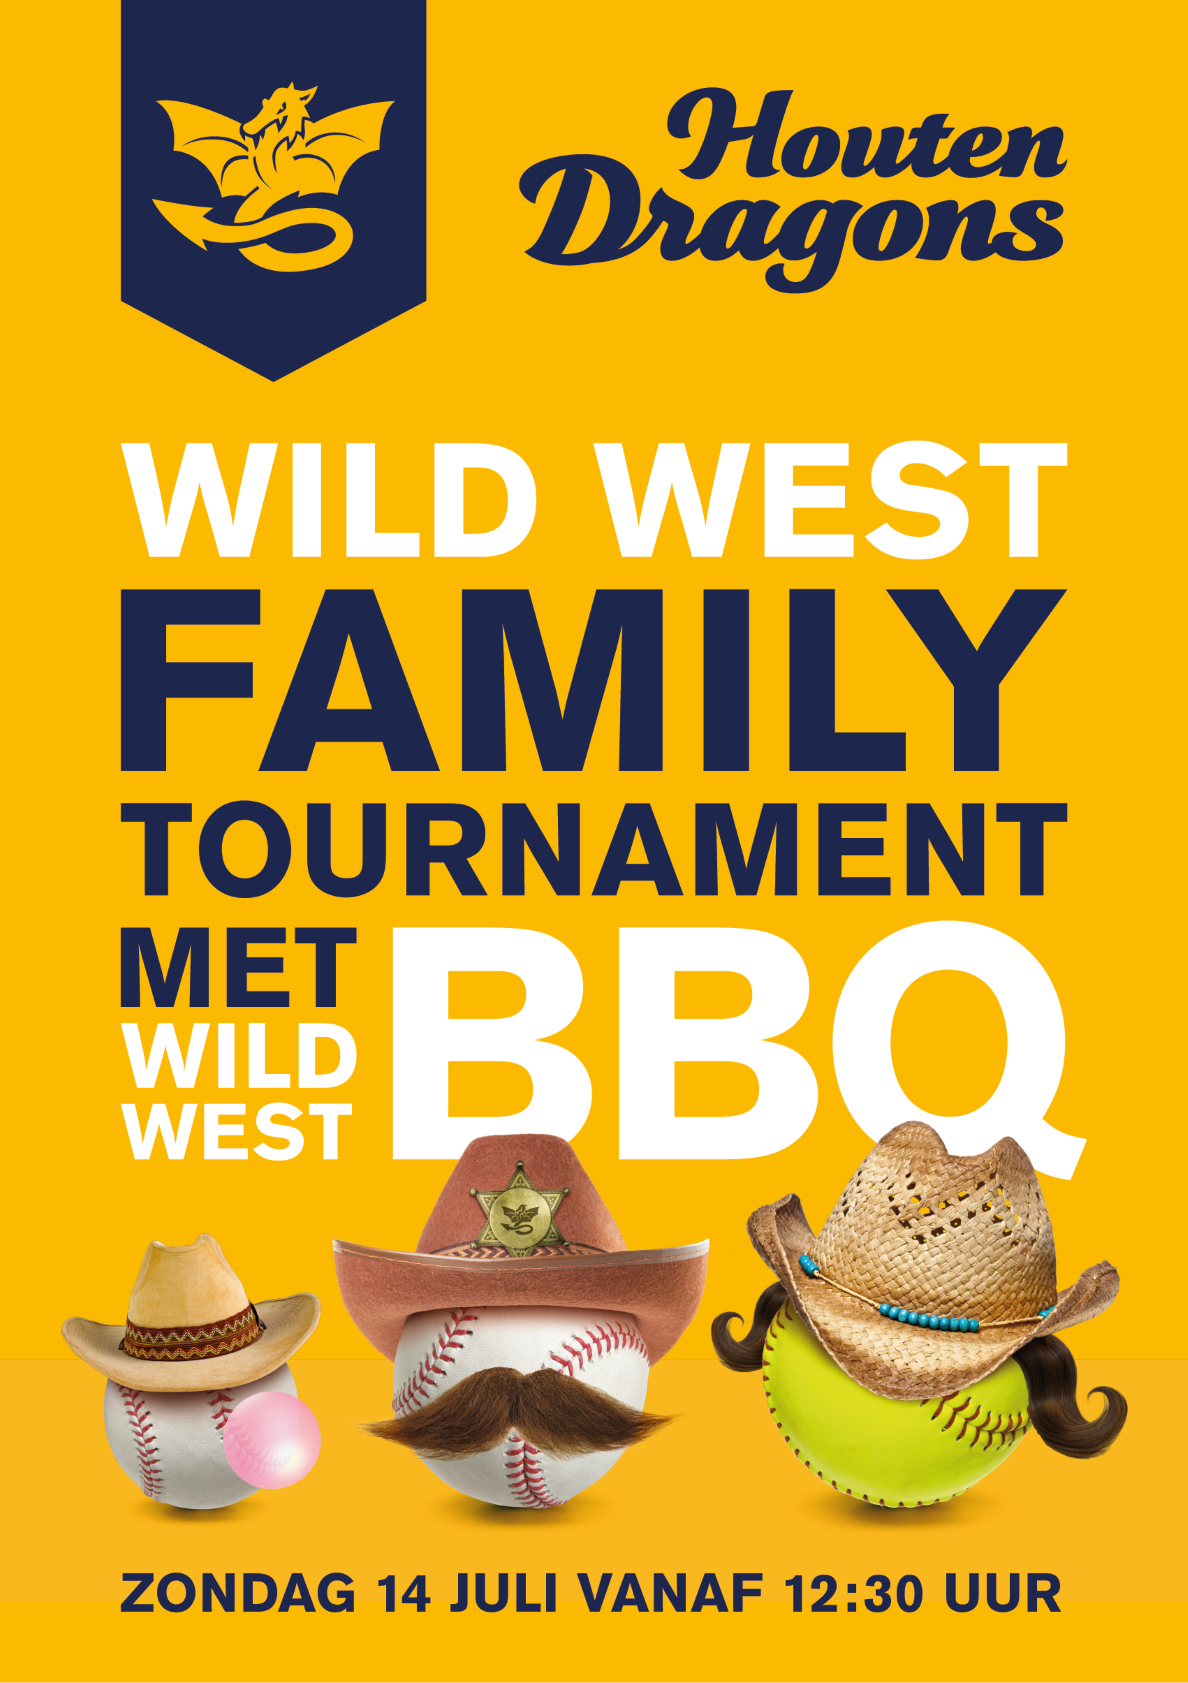 HD WildWestFamilyTournament v1 3